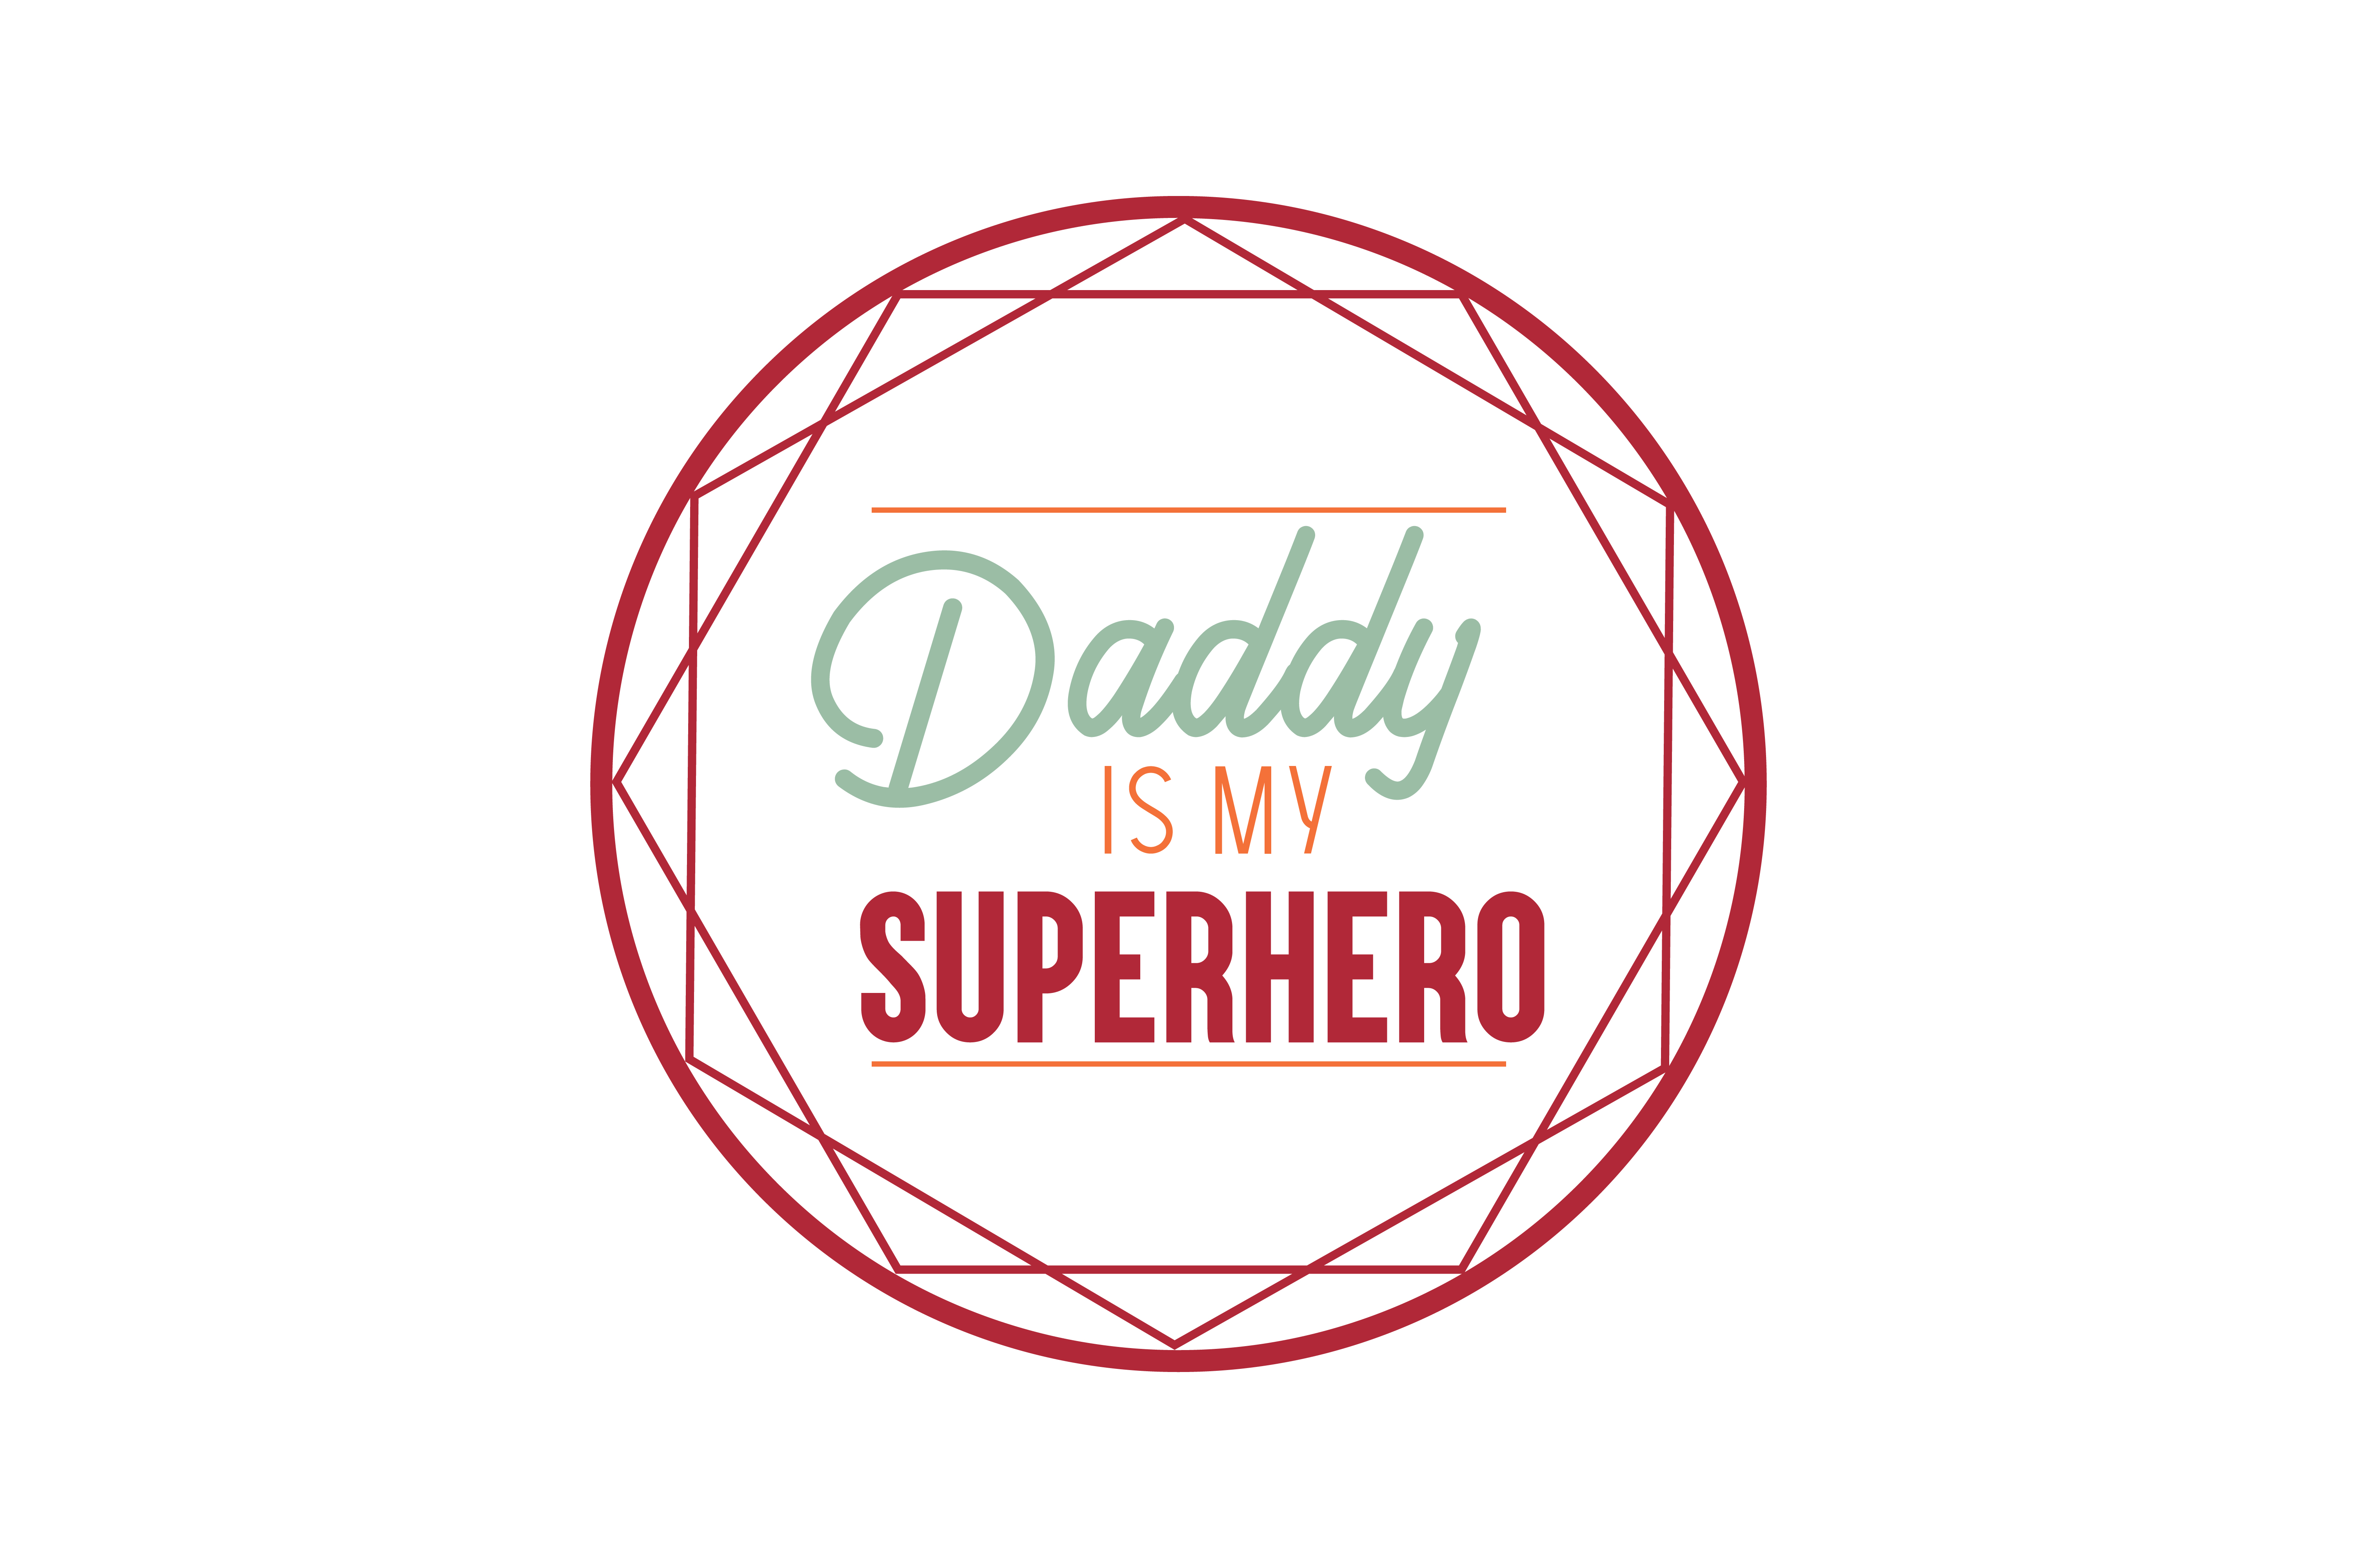 Download Free Daddy Is My Superhero Quote Svg Cut Graphic By Thelucky for Cricut Explore, Silhouette and other cutting machines.